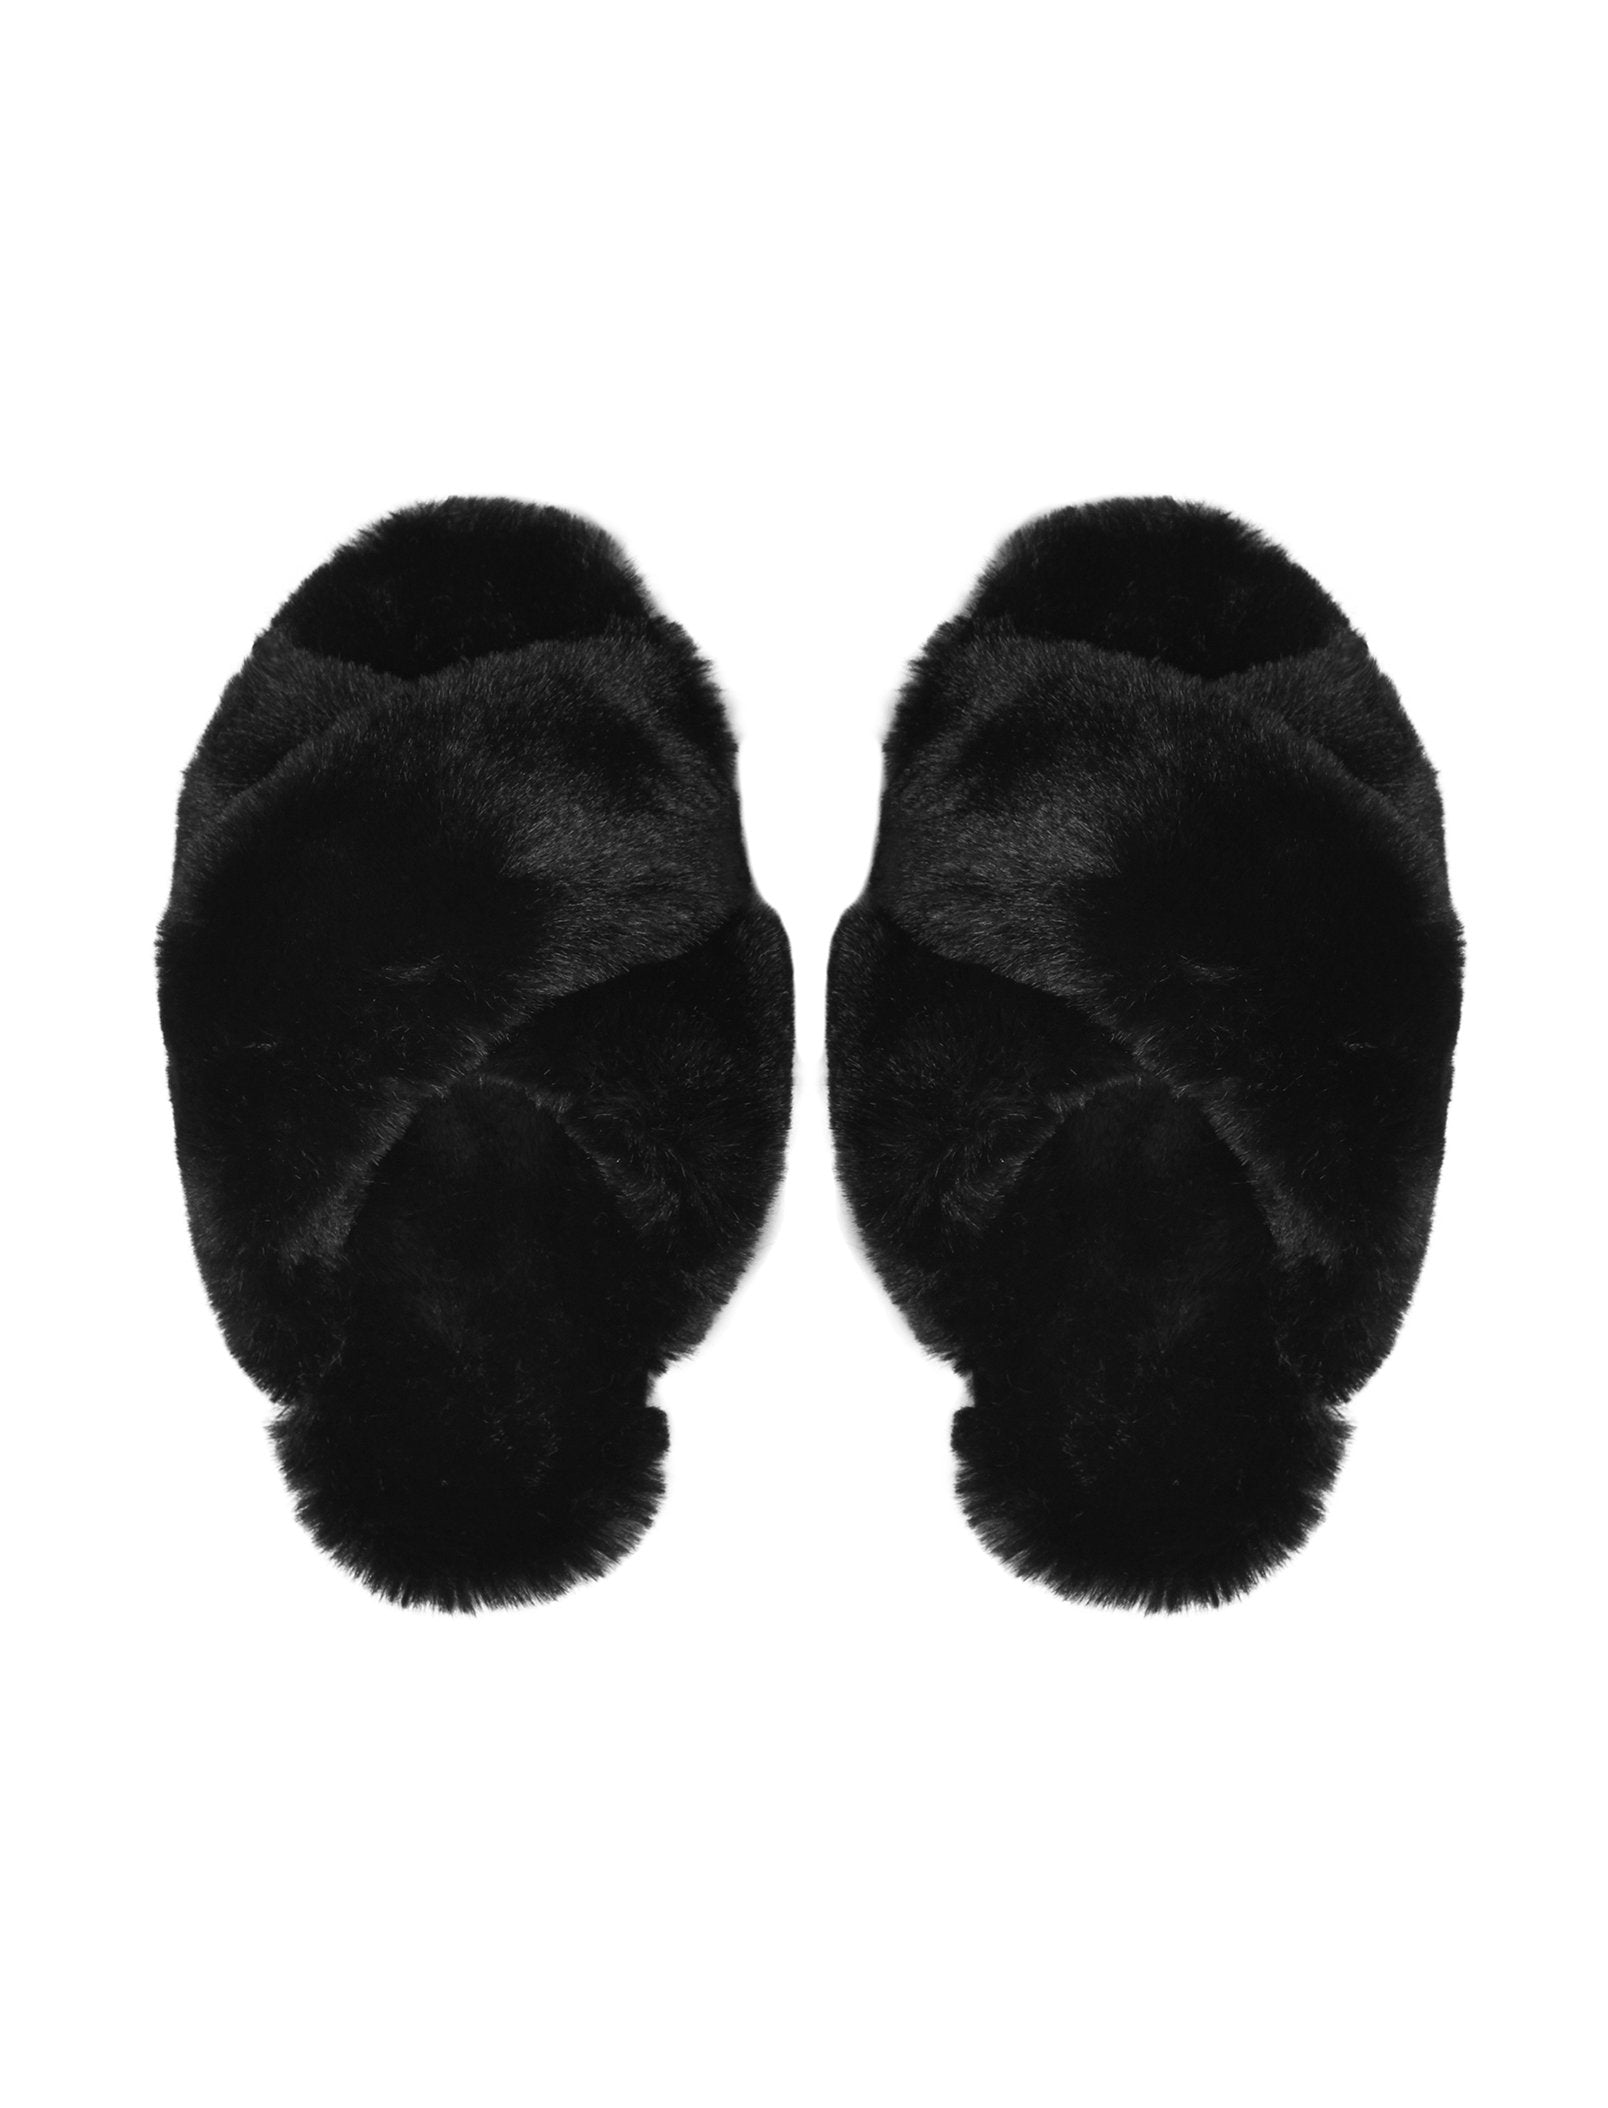 Sheepy Crossover Slides in Black